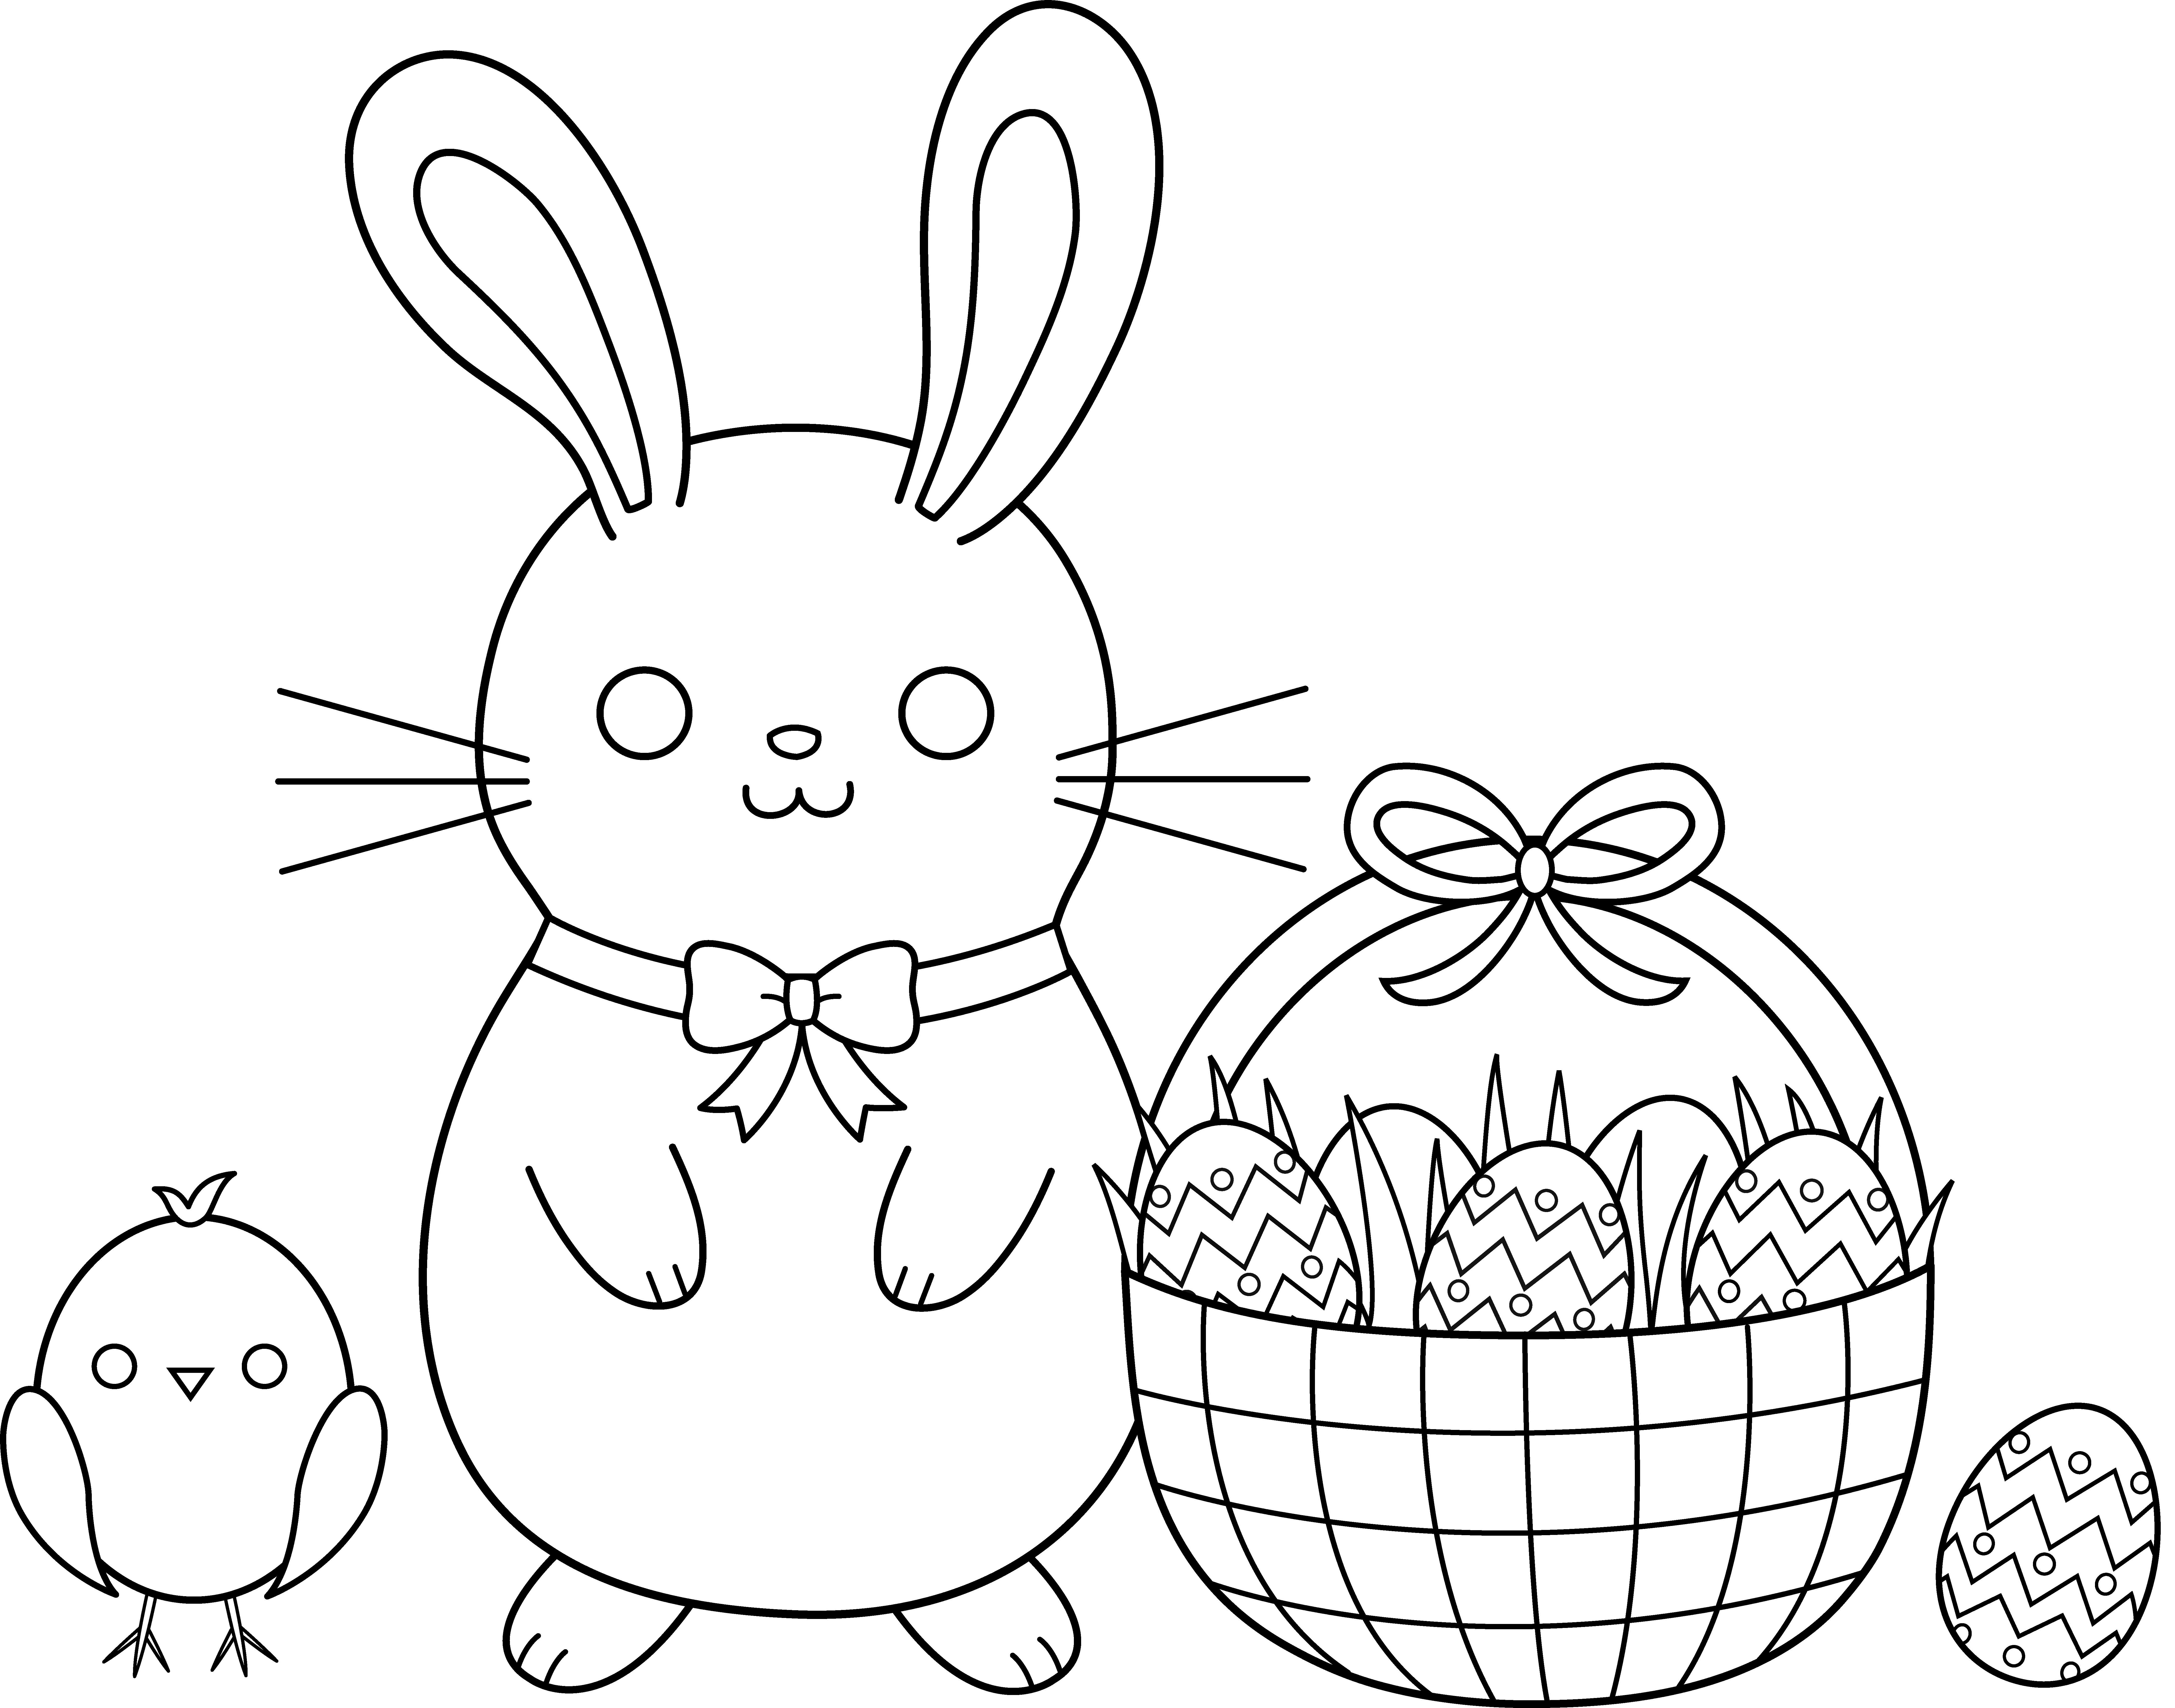 Easter egg hunt clipart black and white transparent Cute Easter Coloring Page - Free Clip Art transparent